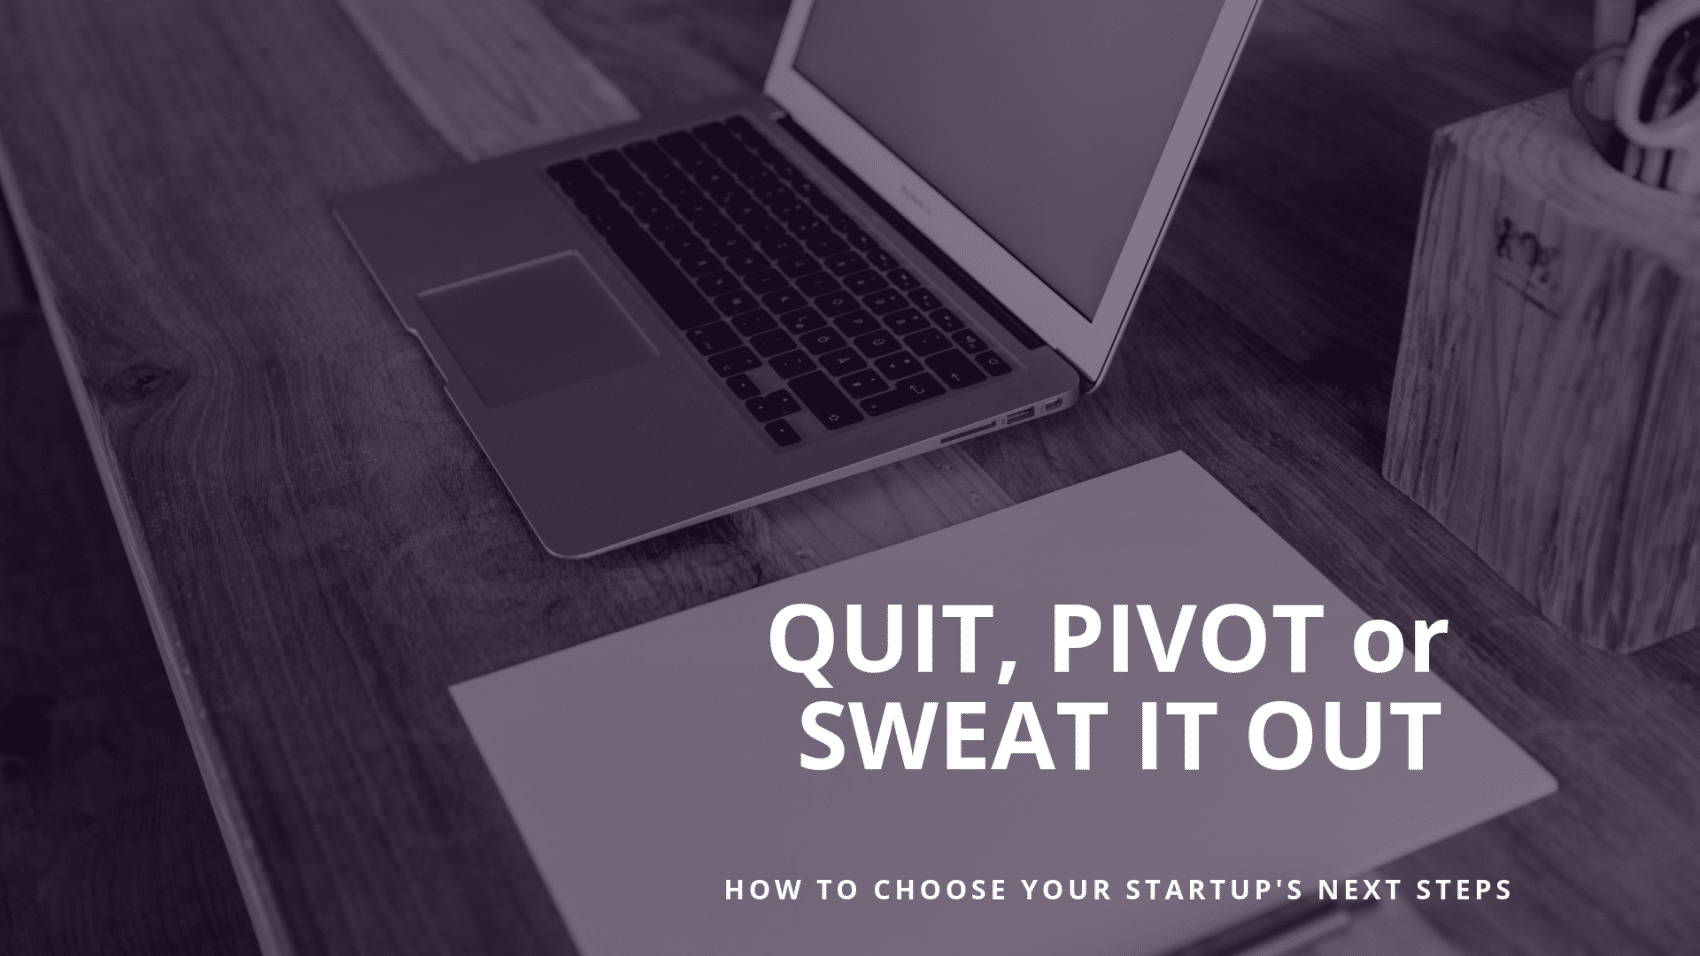 Quit, Pivot or Sweat it Out: How to Choose Your Startup's Next Steps